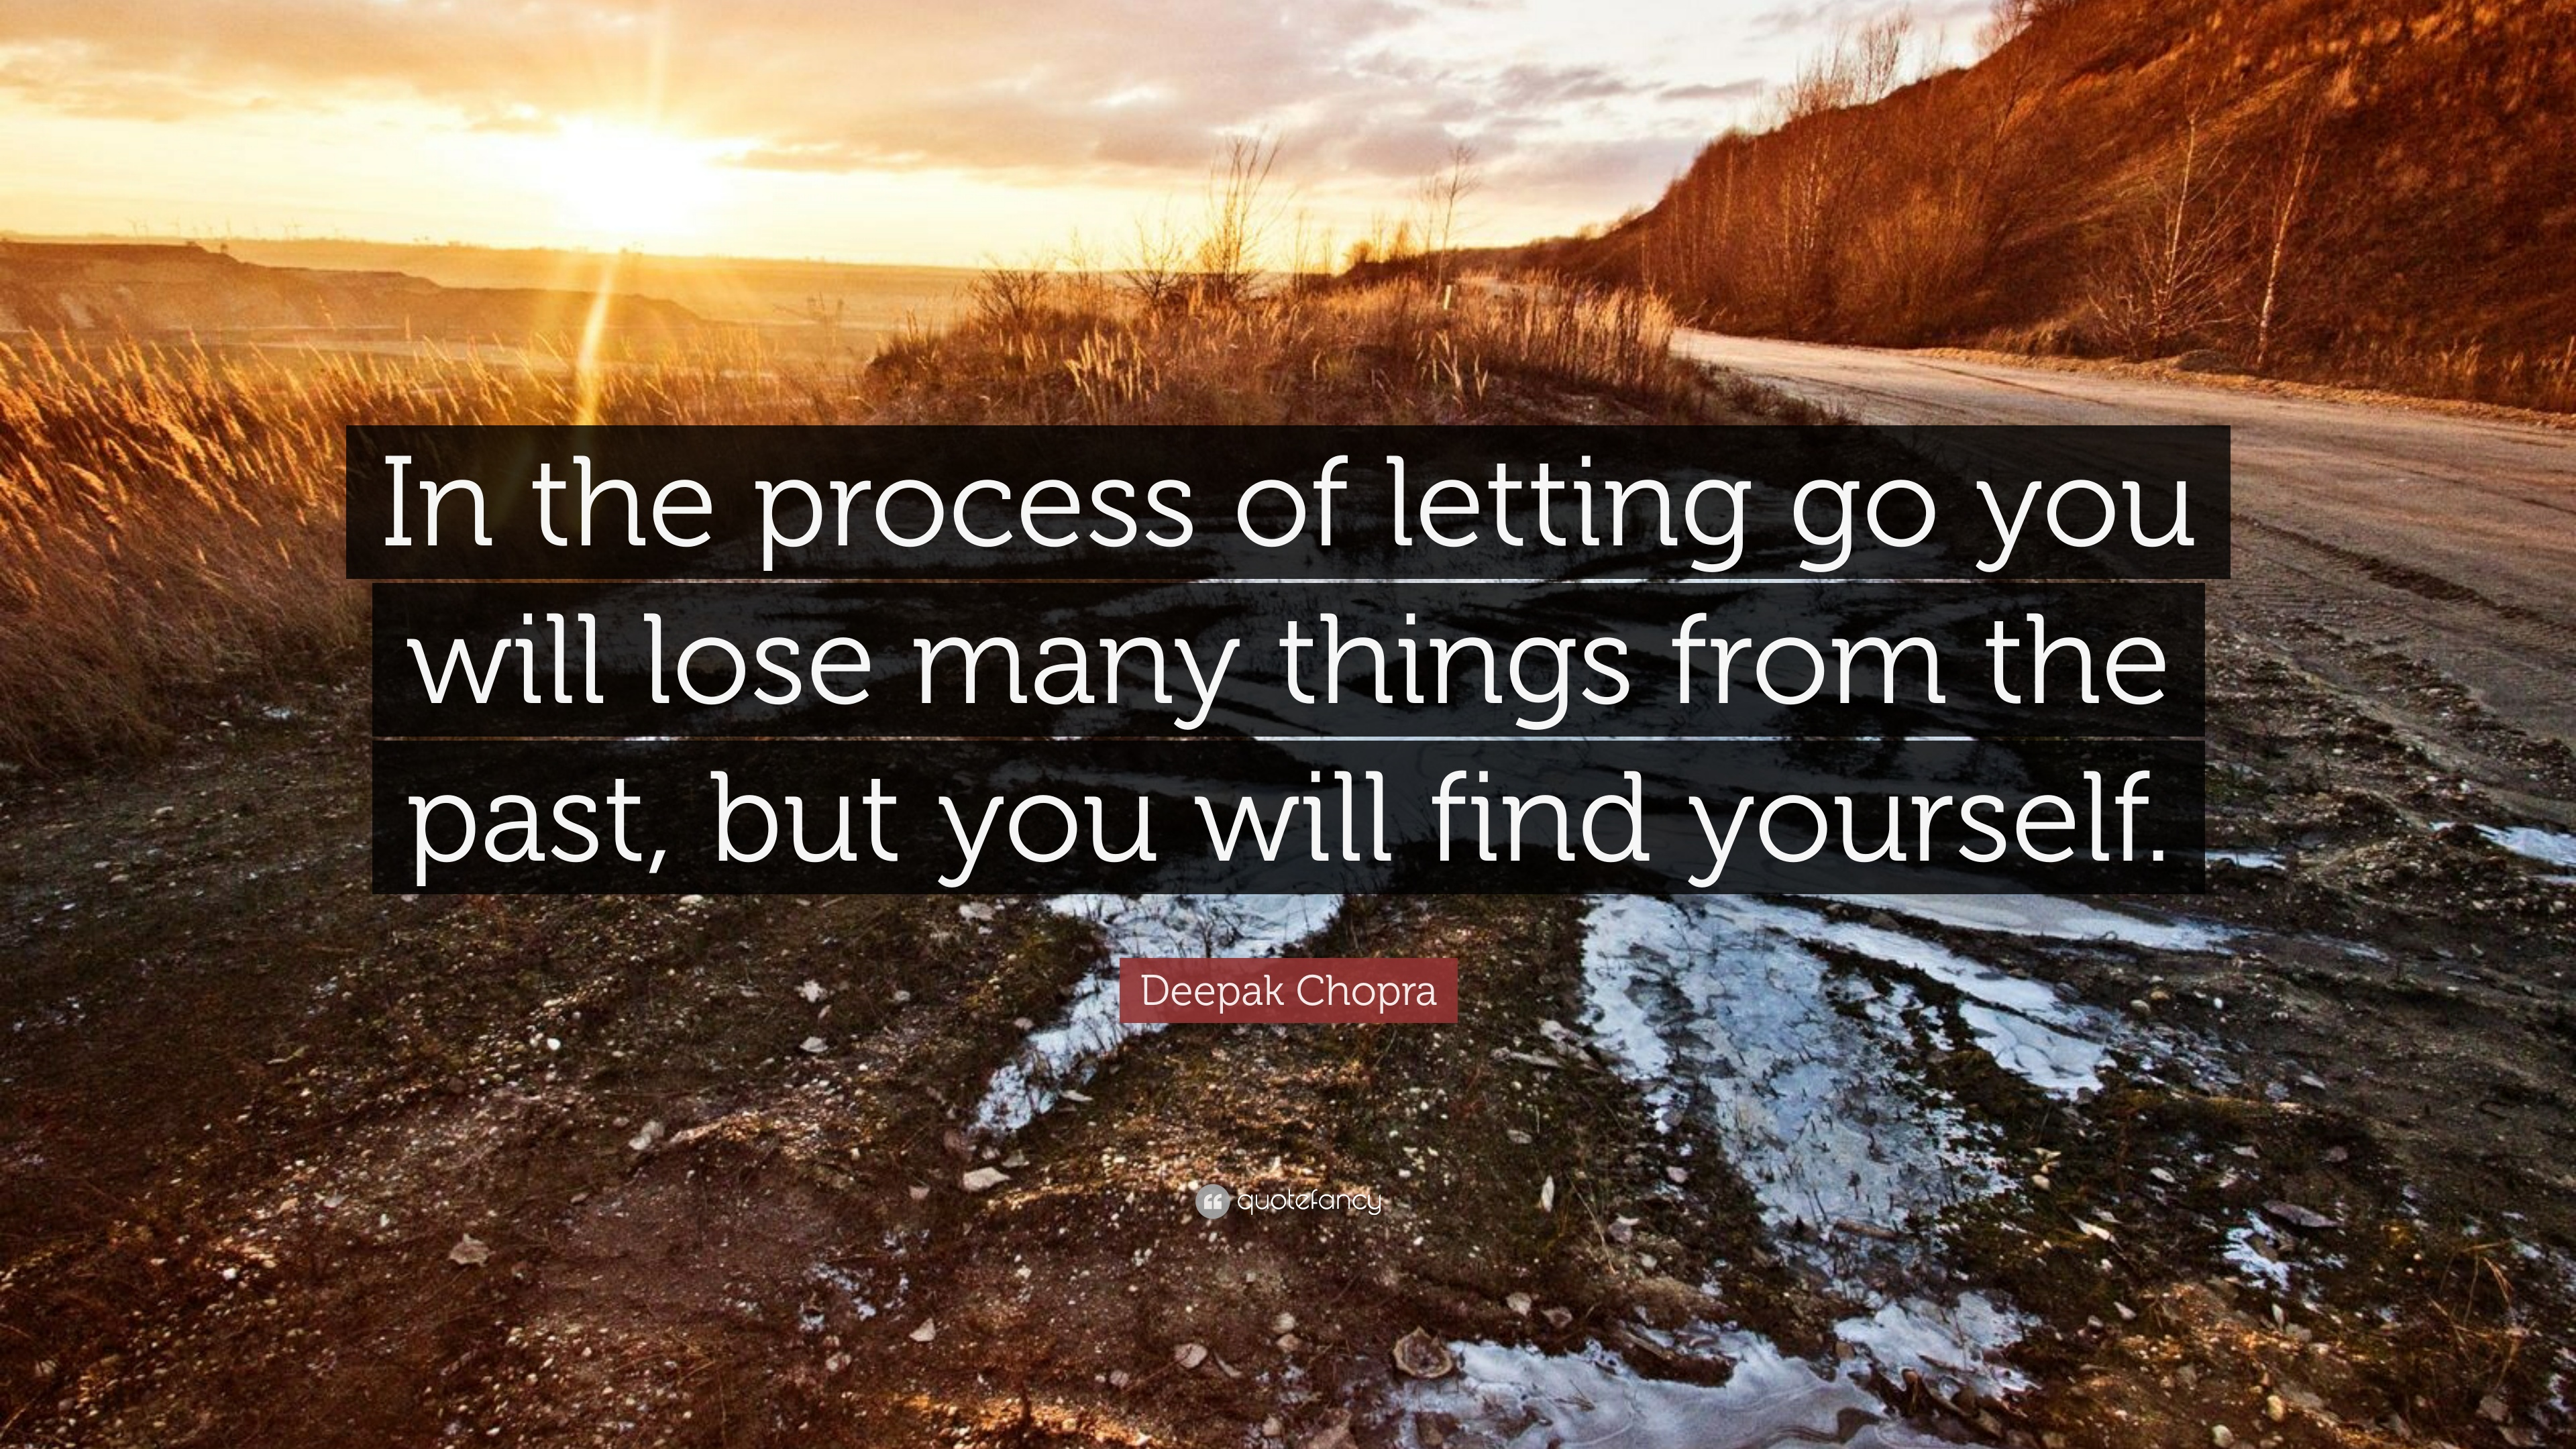 Attractive Deepak Chopra Quote: U201cIn The Process Of Letting Go You Will Lose Many Things